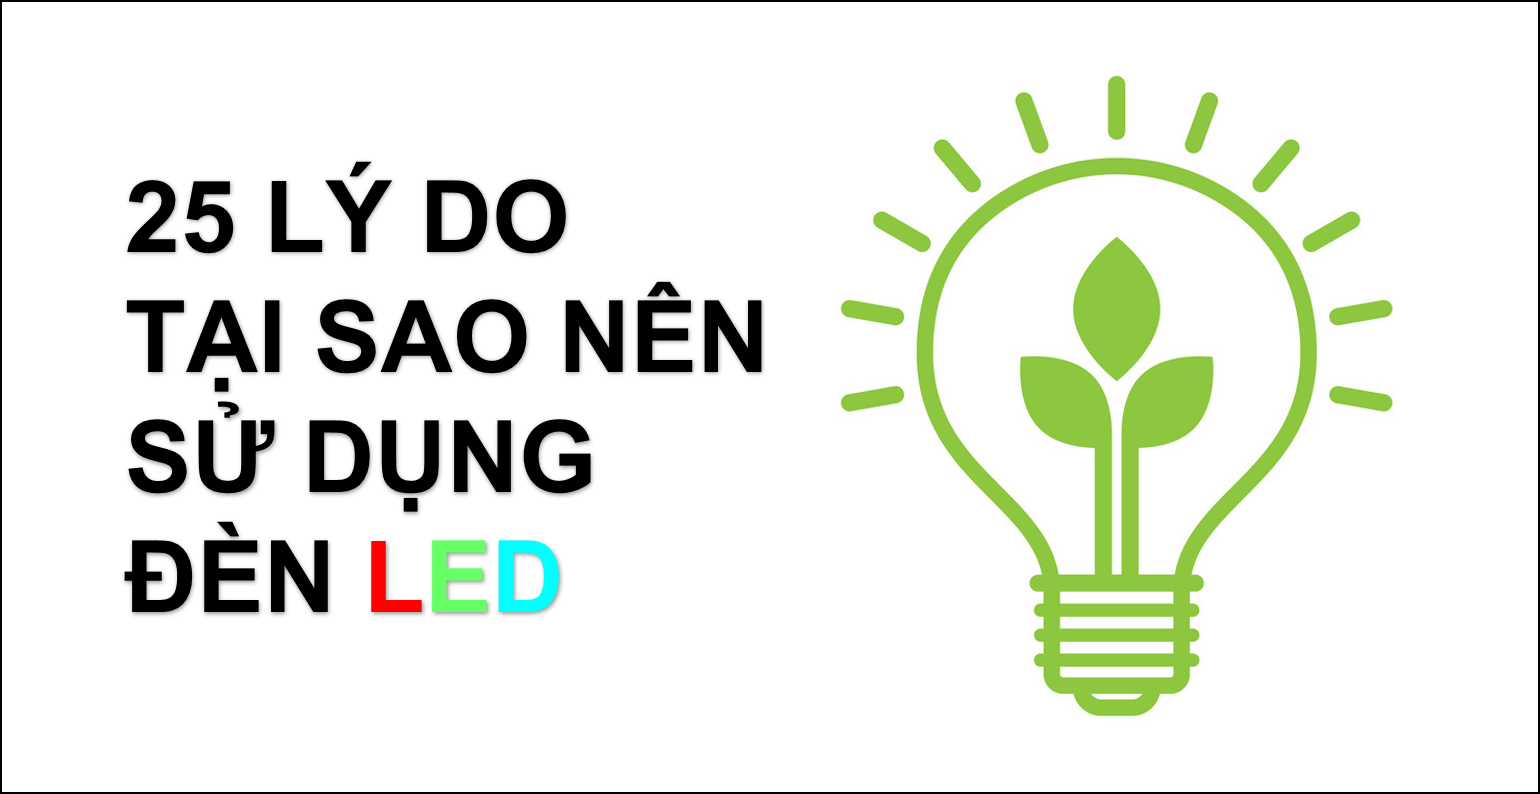 25-ly-do-nen-su-dung-den-led